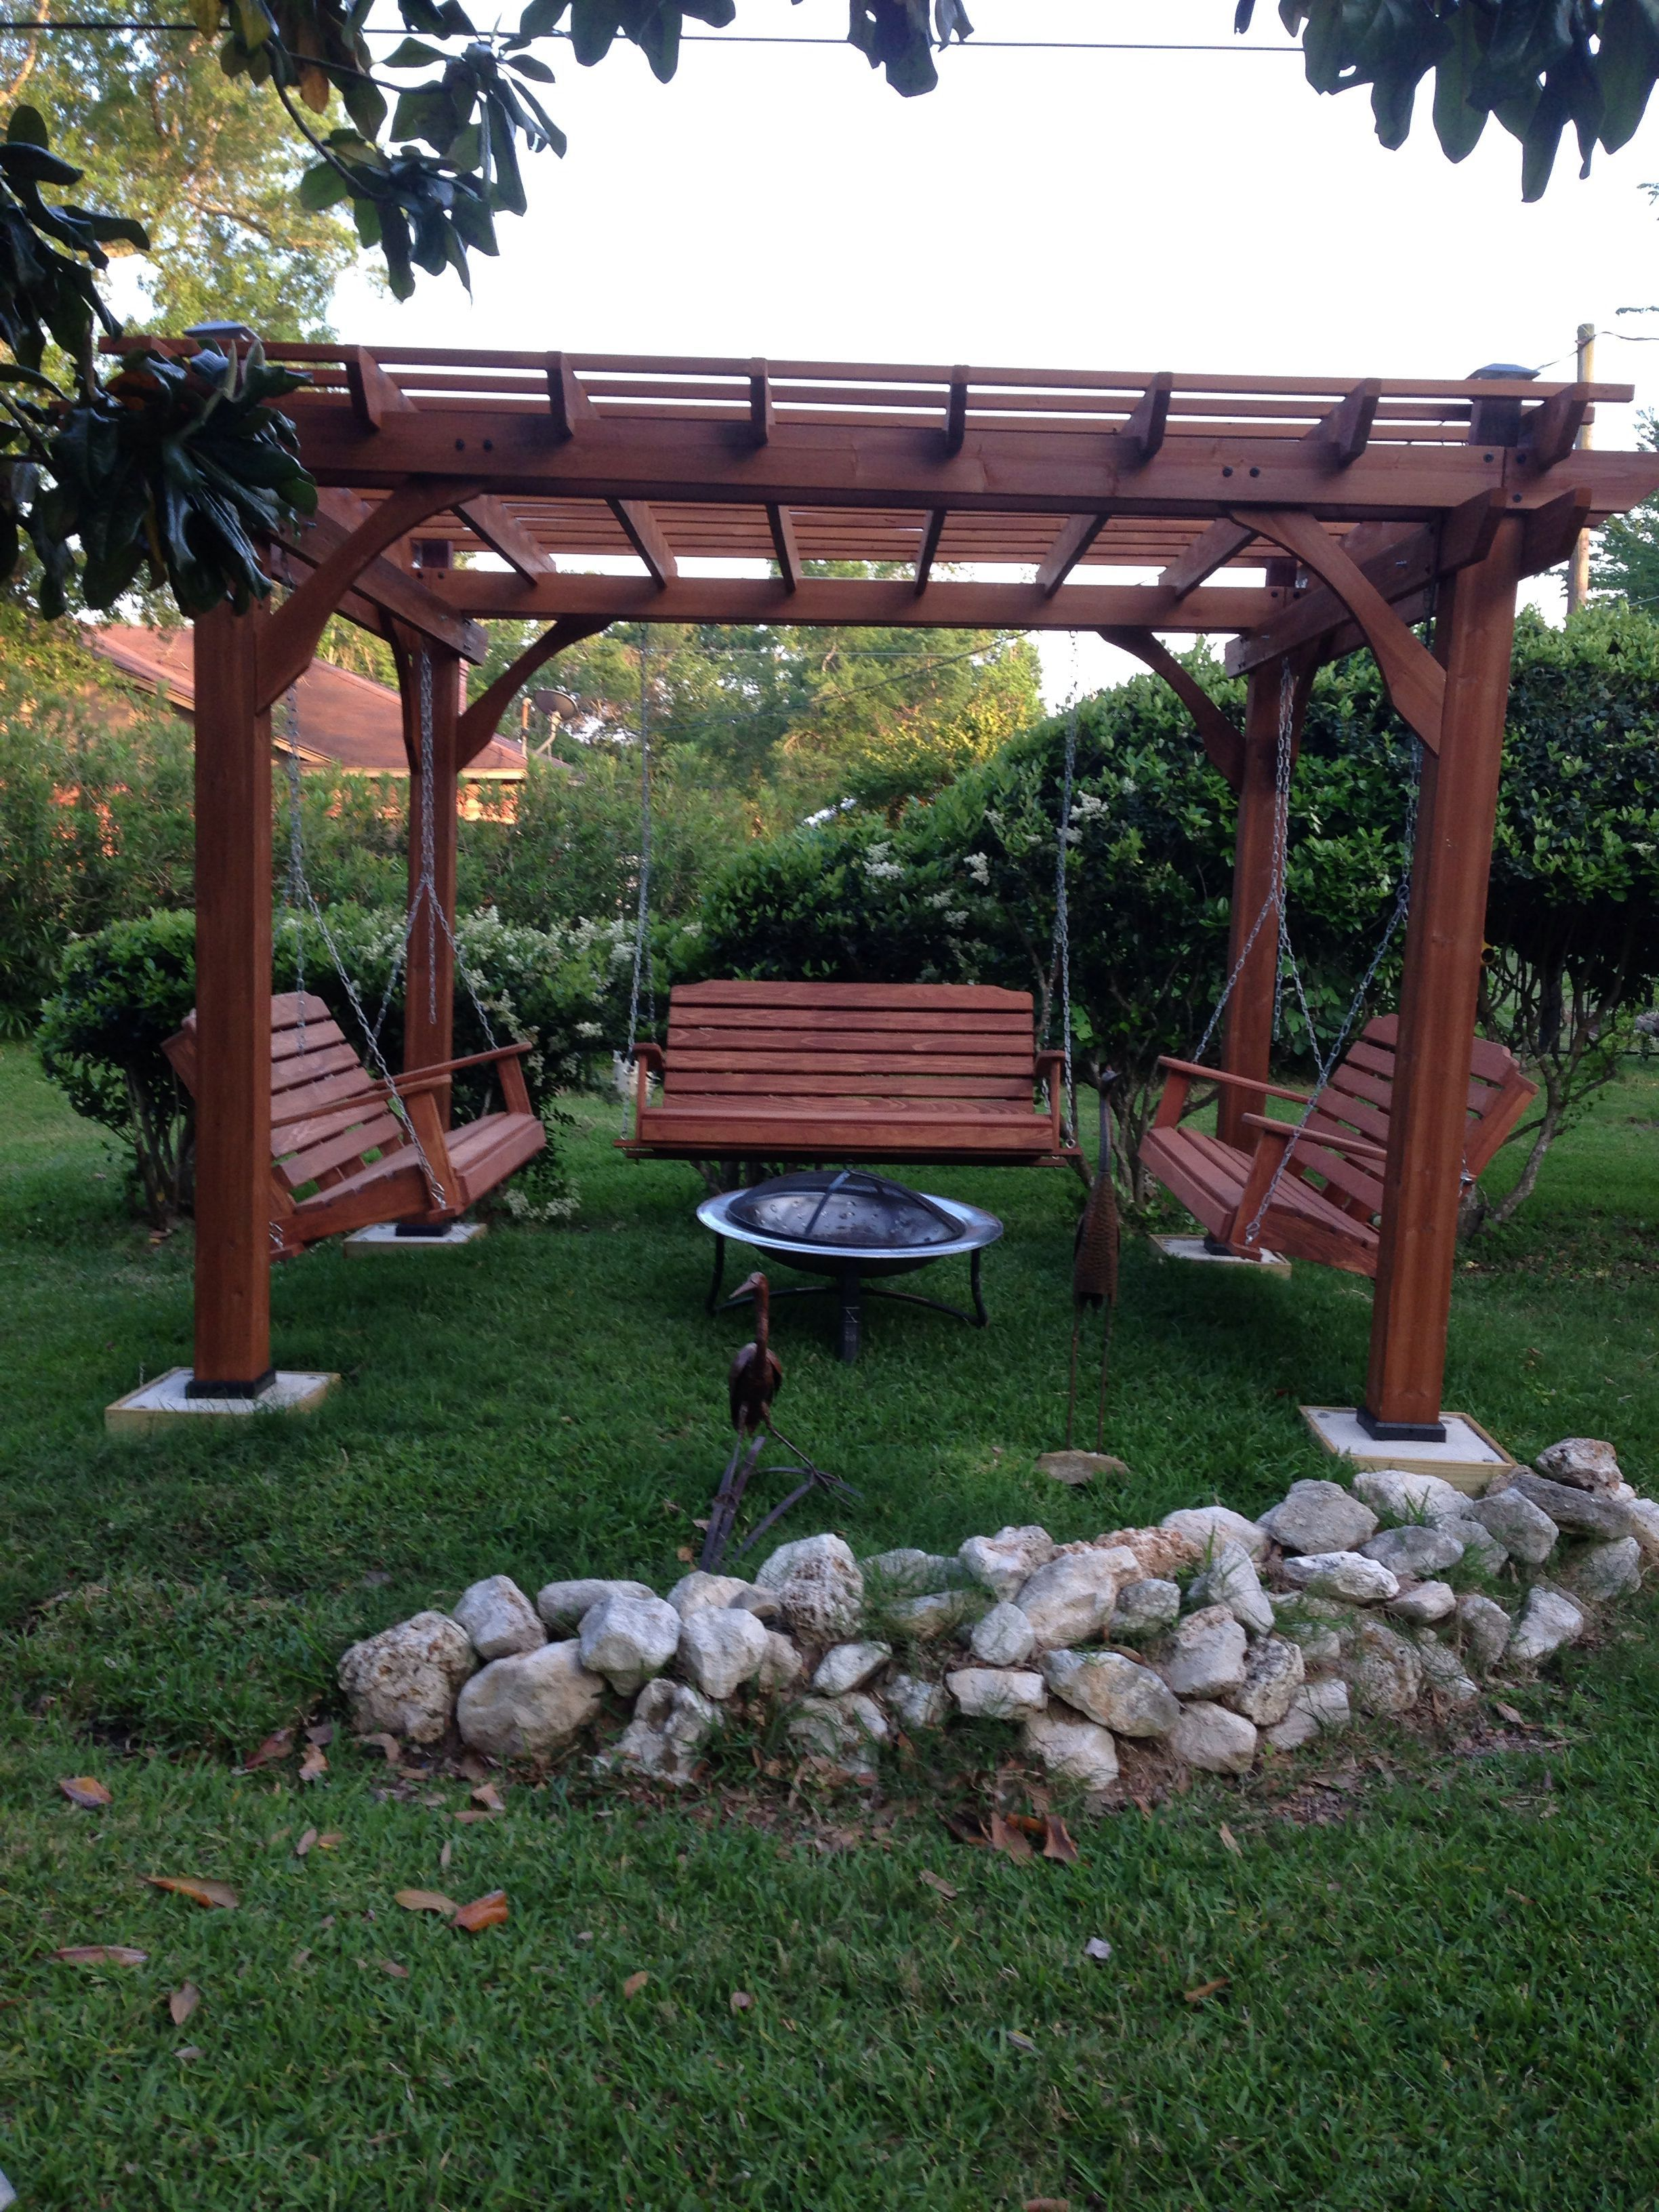 Great outdoor area with pergola swings and fire pit landscaping